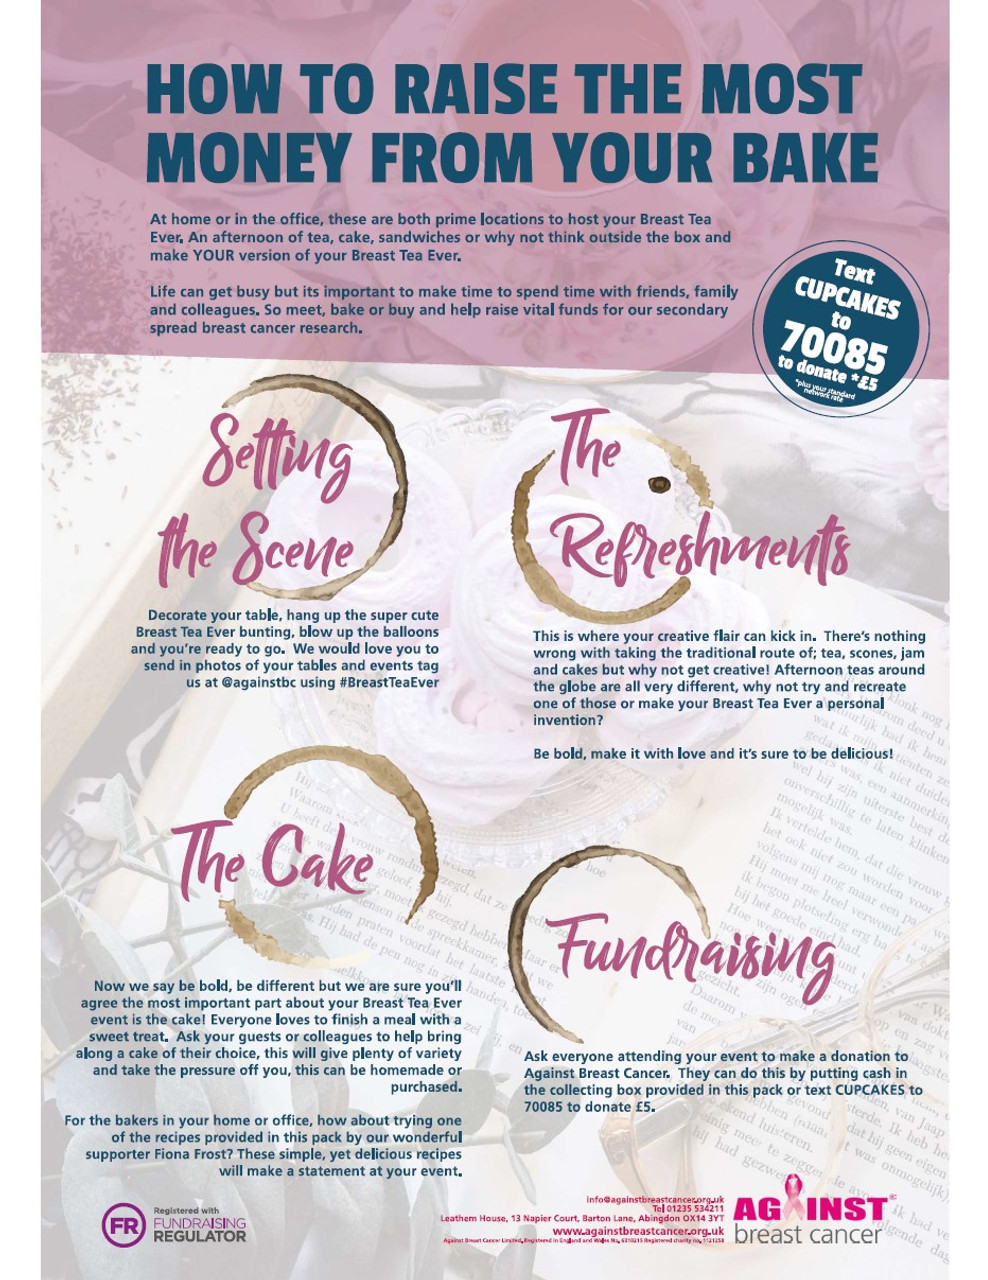 Breast Tea Ever Fundraising Ideas Against Breast Cancer